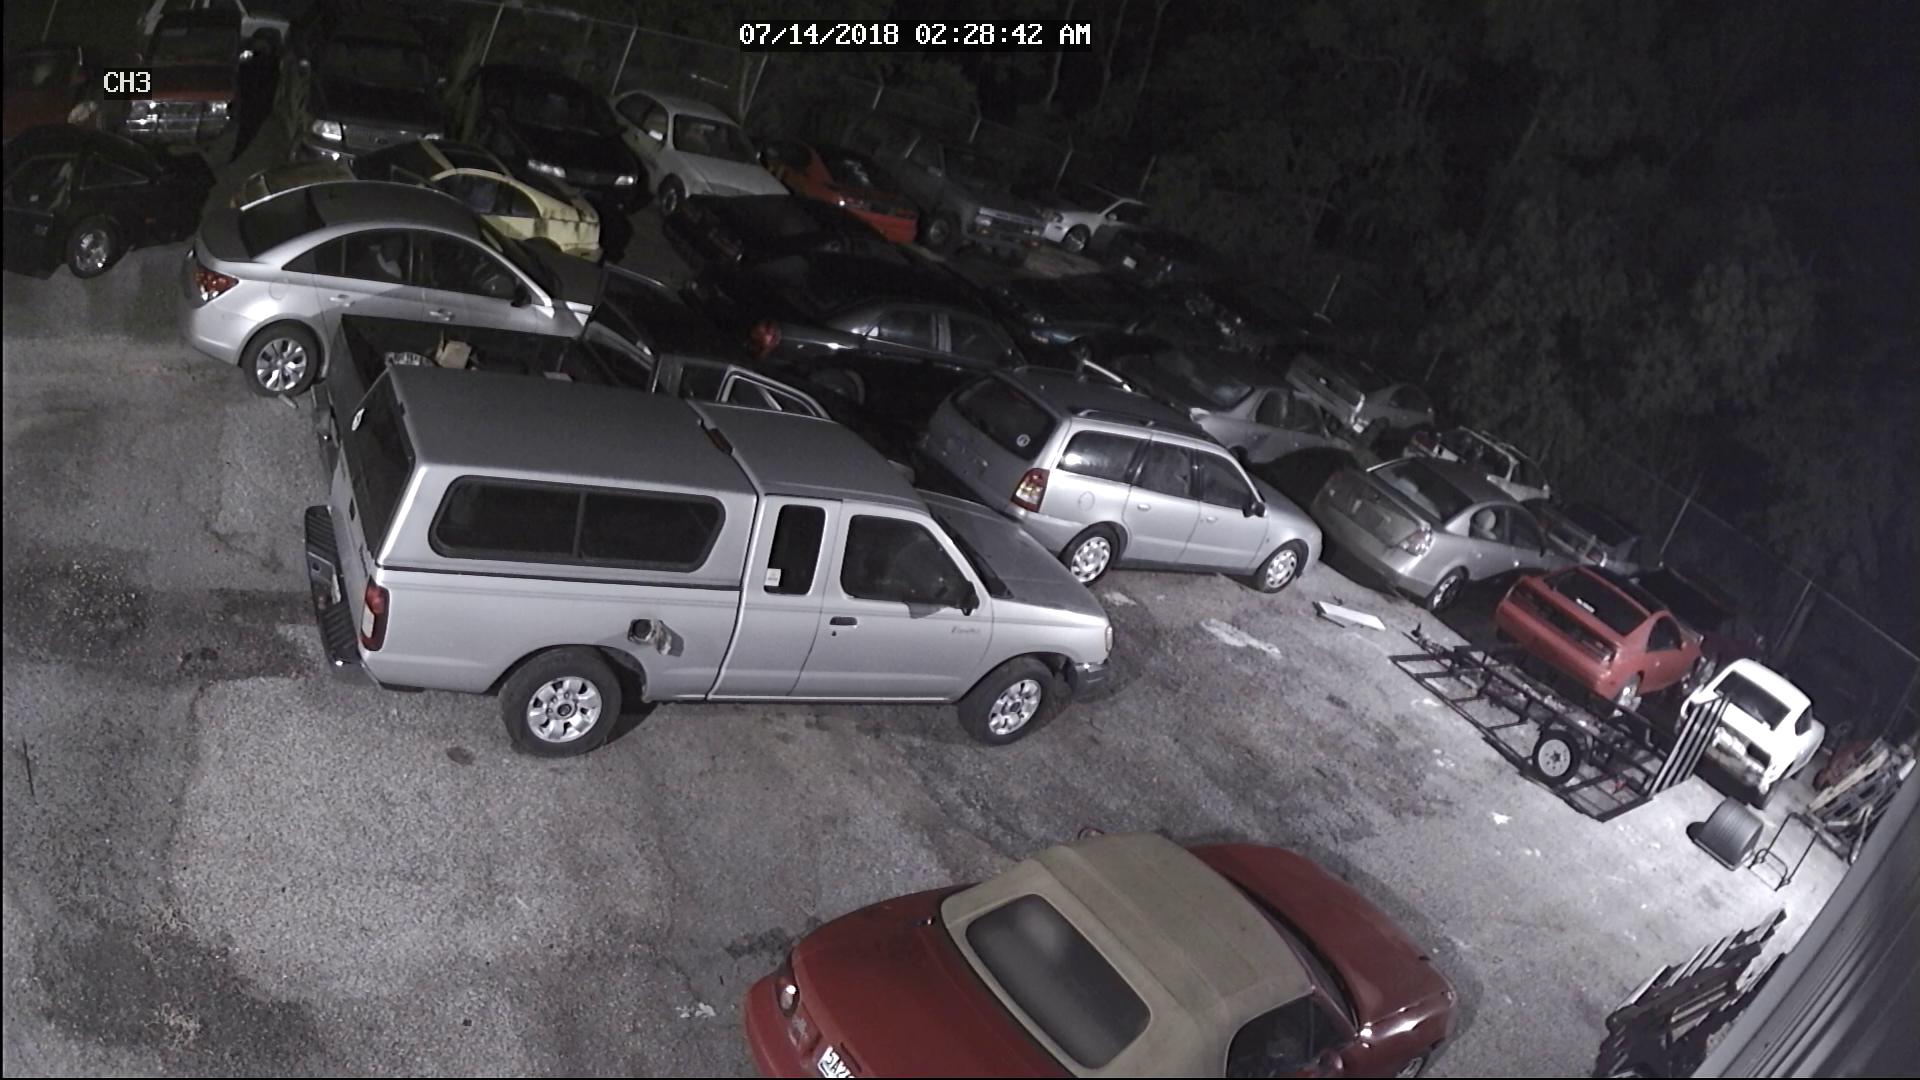 Mobile Police seek public assistance to locate two vehicle burglary suspects